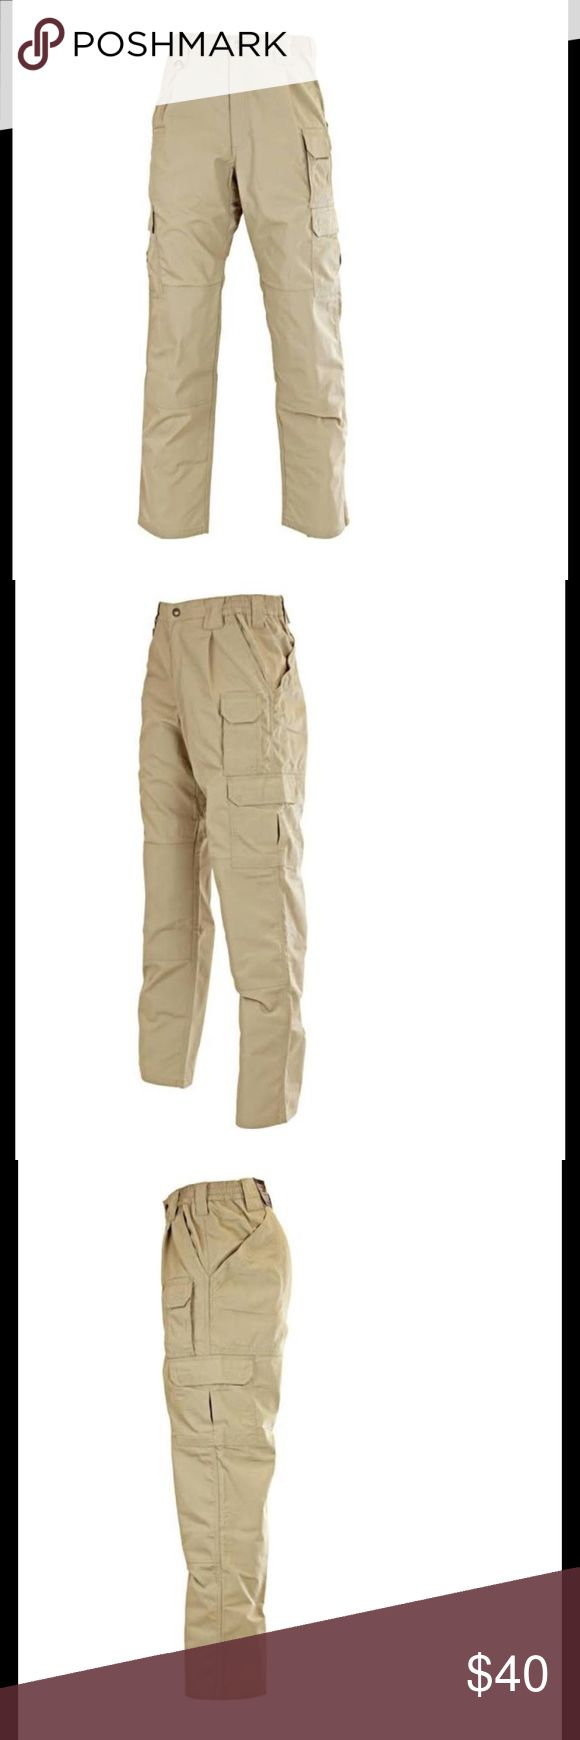 5.11 Men's Tactical 74273 TacLite Pro Pant 32x32 Features of 5.11 Taclite Pro Pants Fabric weight: 6.14oz. 65% polyester / 35% cotton ripstop fabric Teflon treatment resists stains and dries quickly Elastic waistband provides a flexible fit Reinforced with 48 bar-tacks and triple stitching Draw-cord blousing system D-ring on the hip 5.11 buddy strap YKK zippers Two front pockets with a flat-edge coin pocket on the right side Knee-pad pockets One thigh pocket Two rear pockets Two cargo…